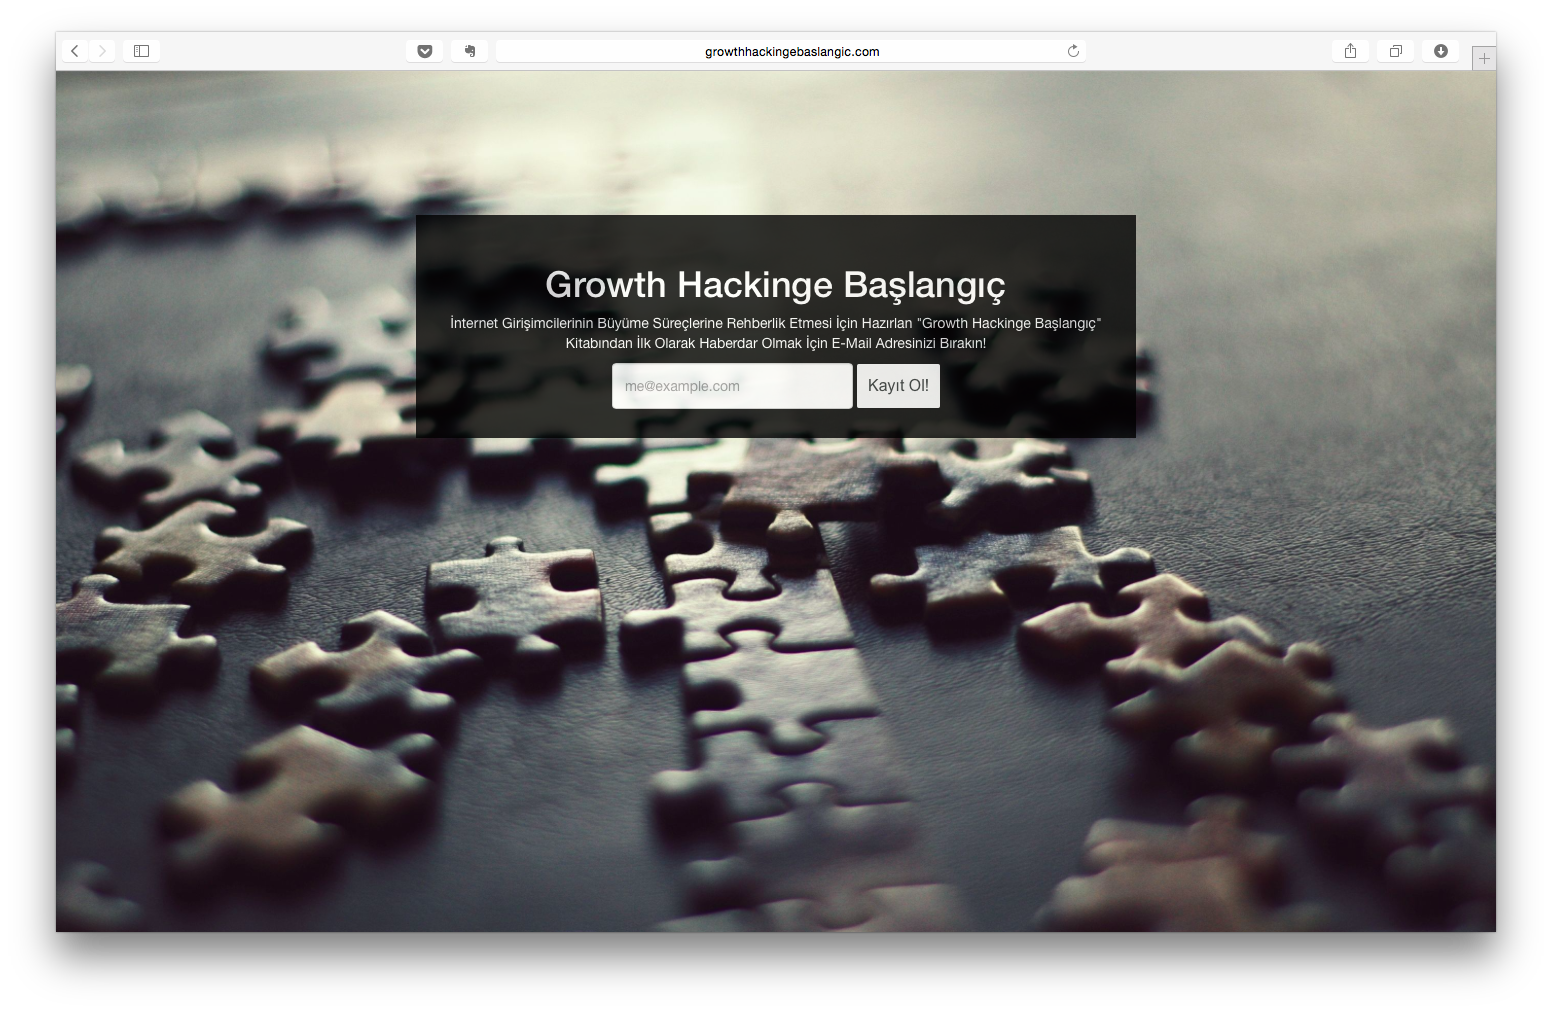 Growth Hackinge Başlangıç